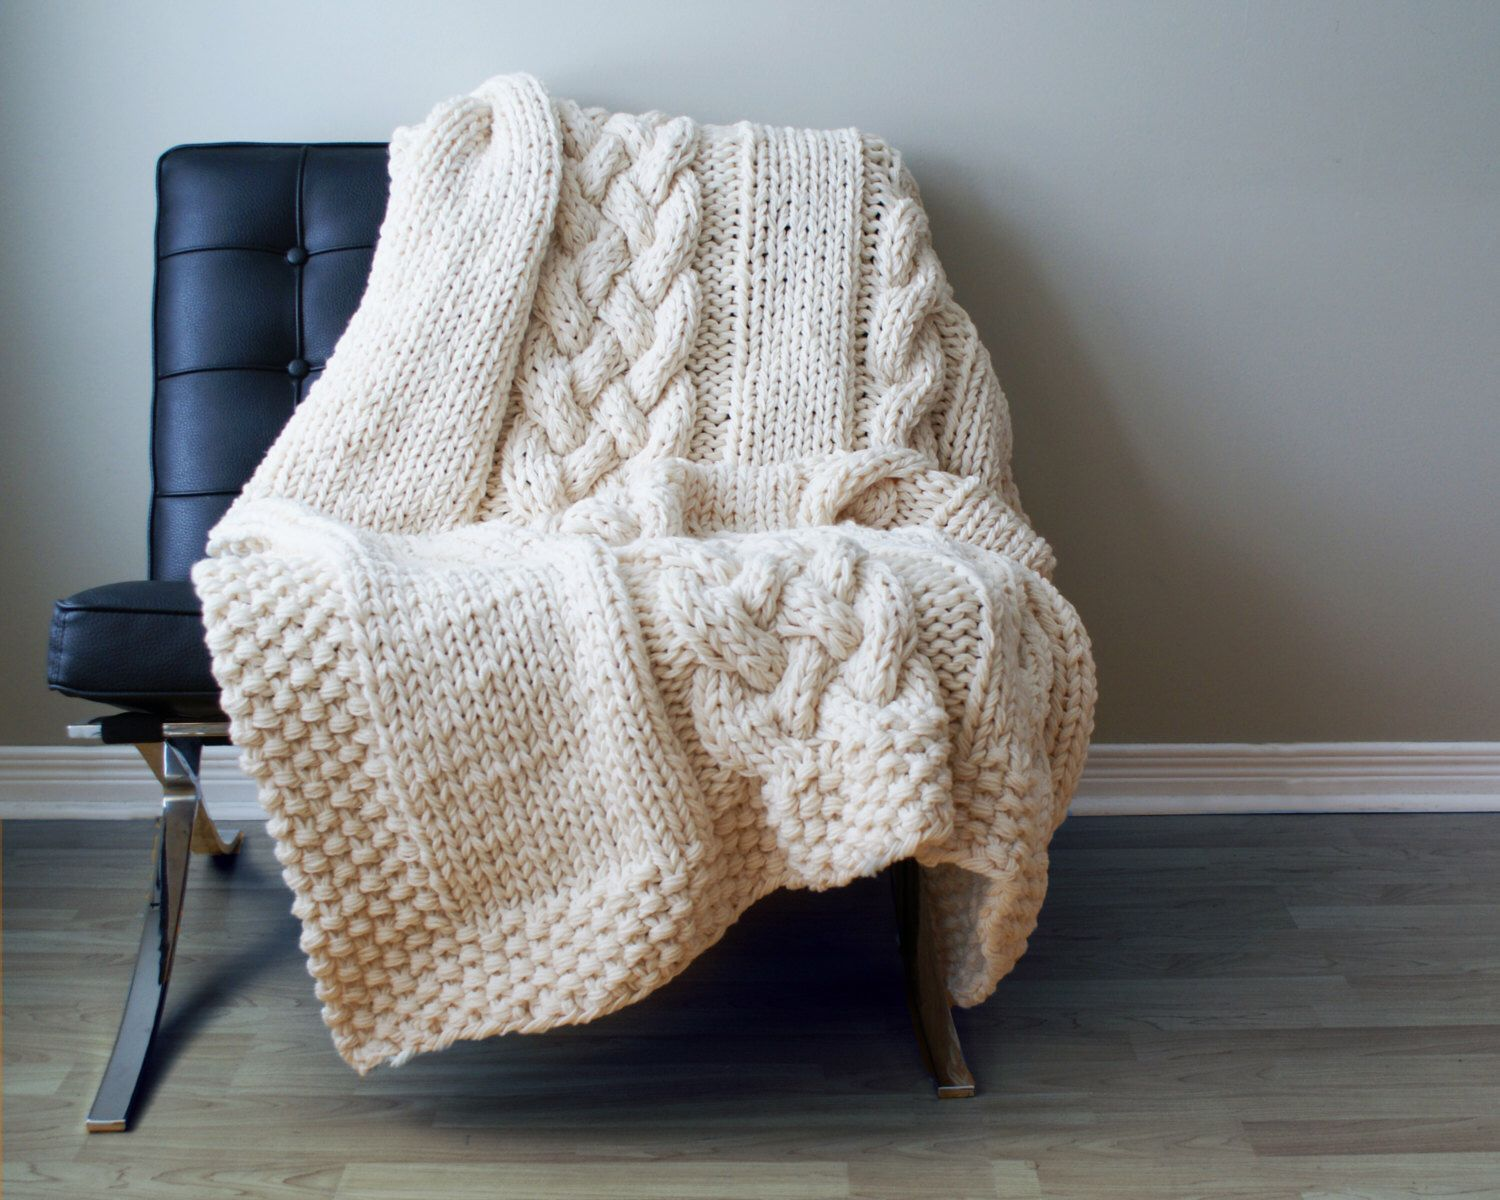 DIY Knitting PATTERN - Throw Blanket / Rug Super Chunky Double Cable ...